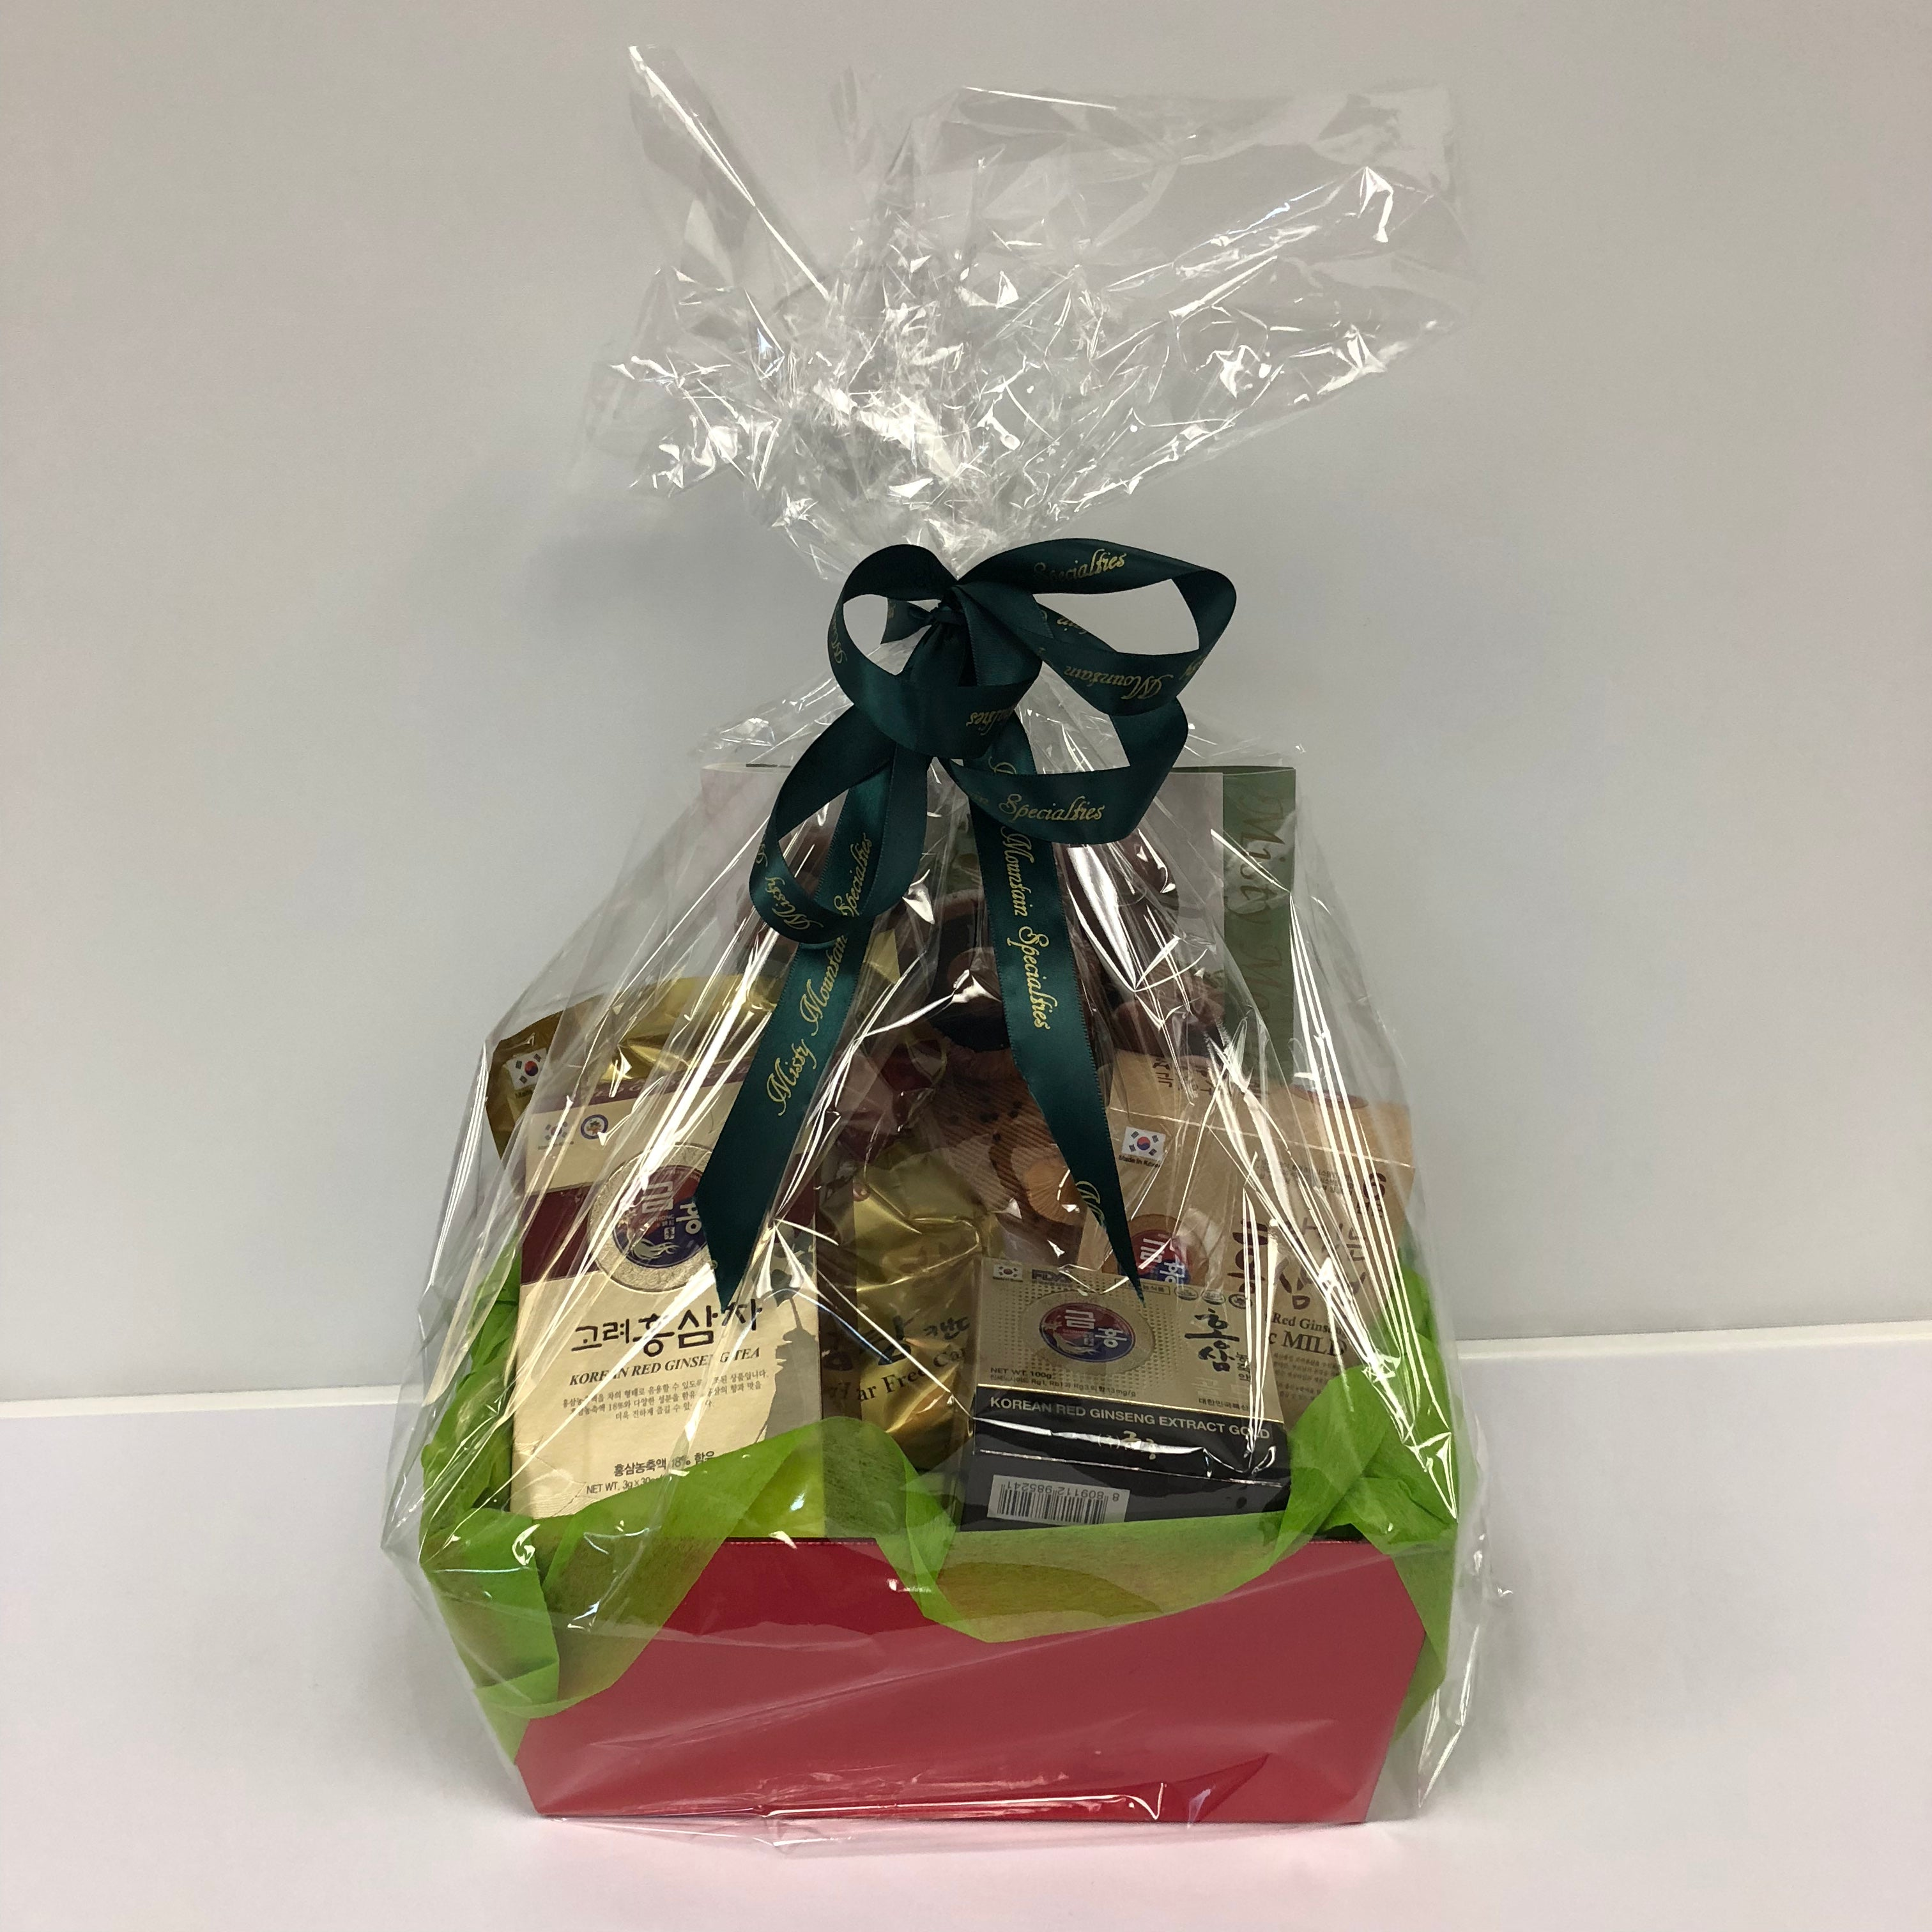 Misty Mountain Specialties Gift Basket